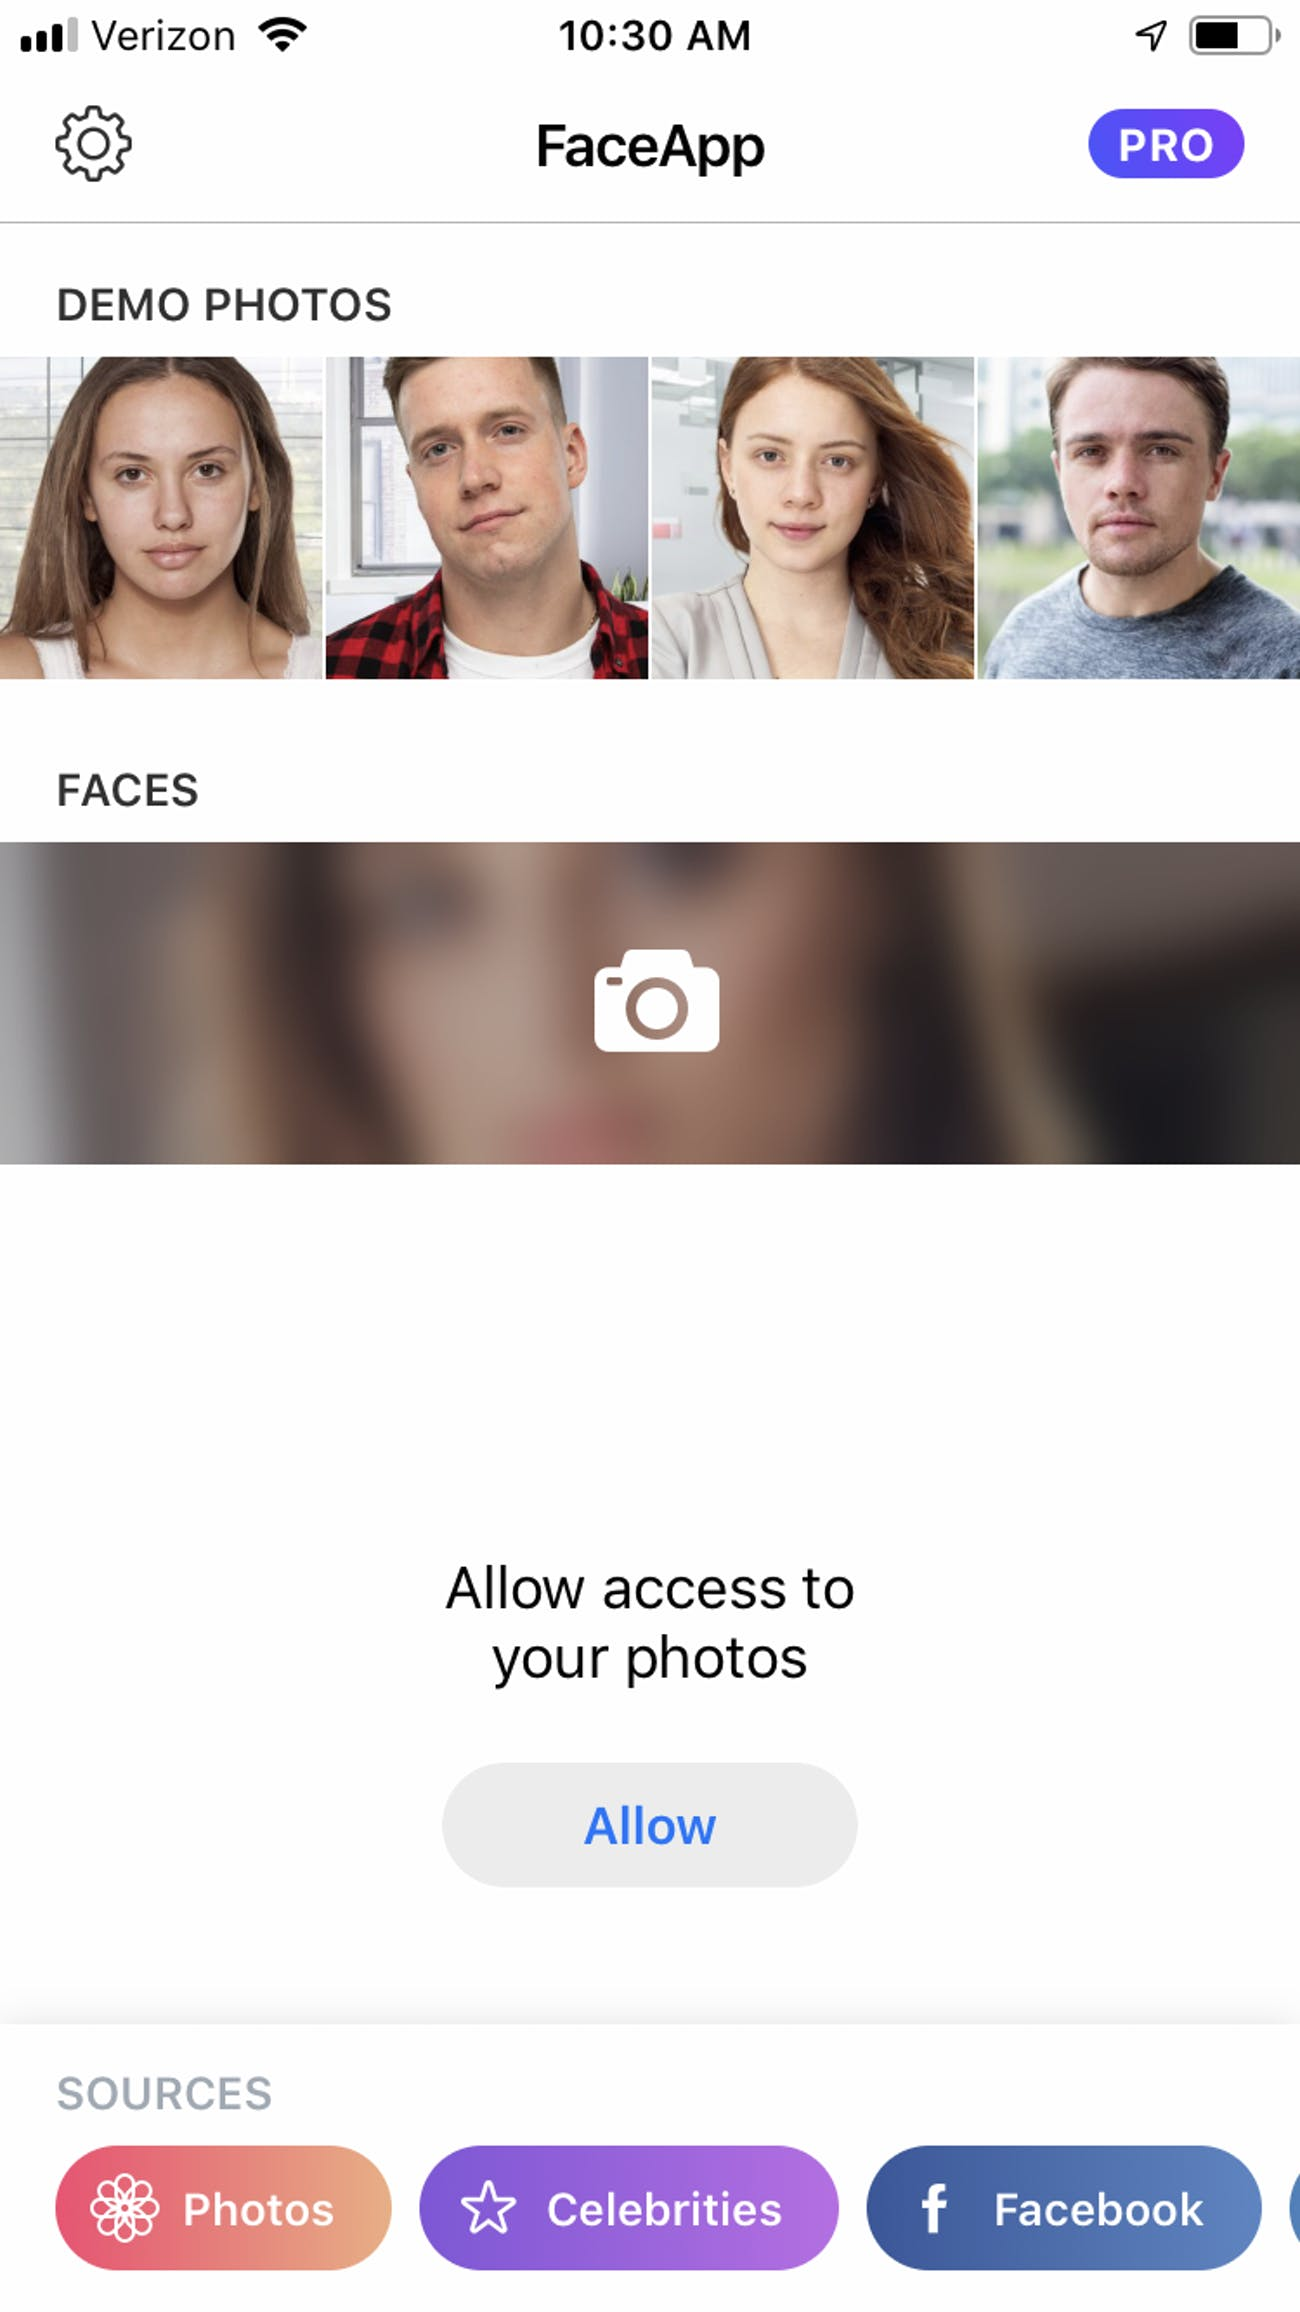 FaceApp: Privacy Concerns, Features for the Viral App That